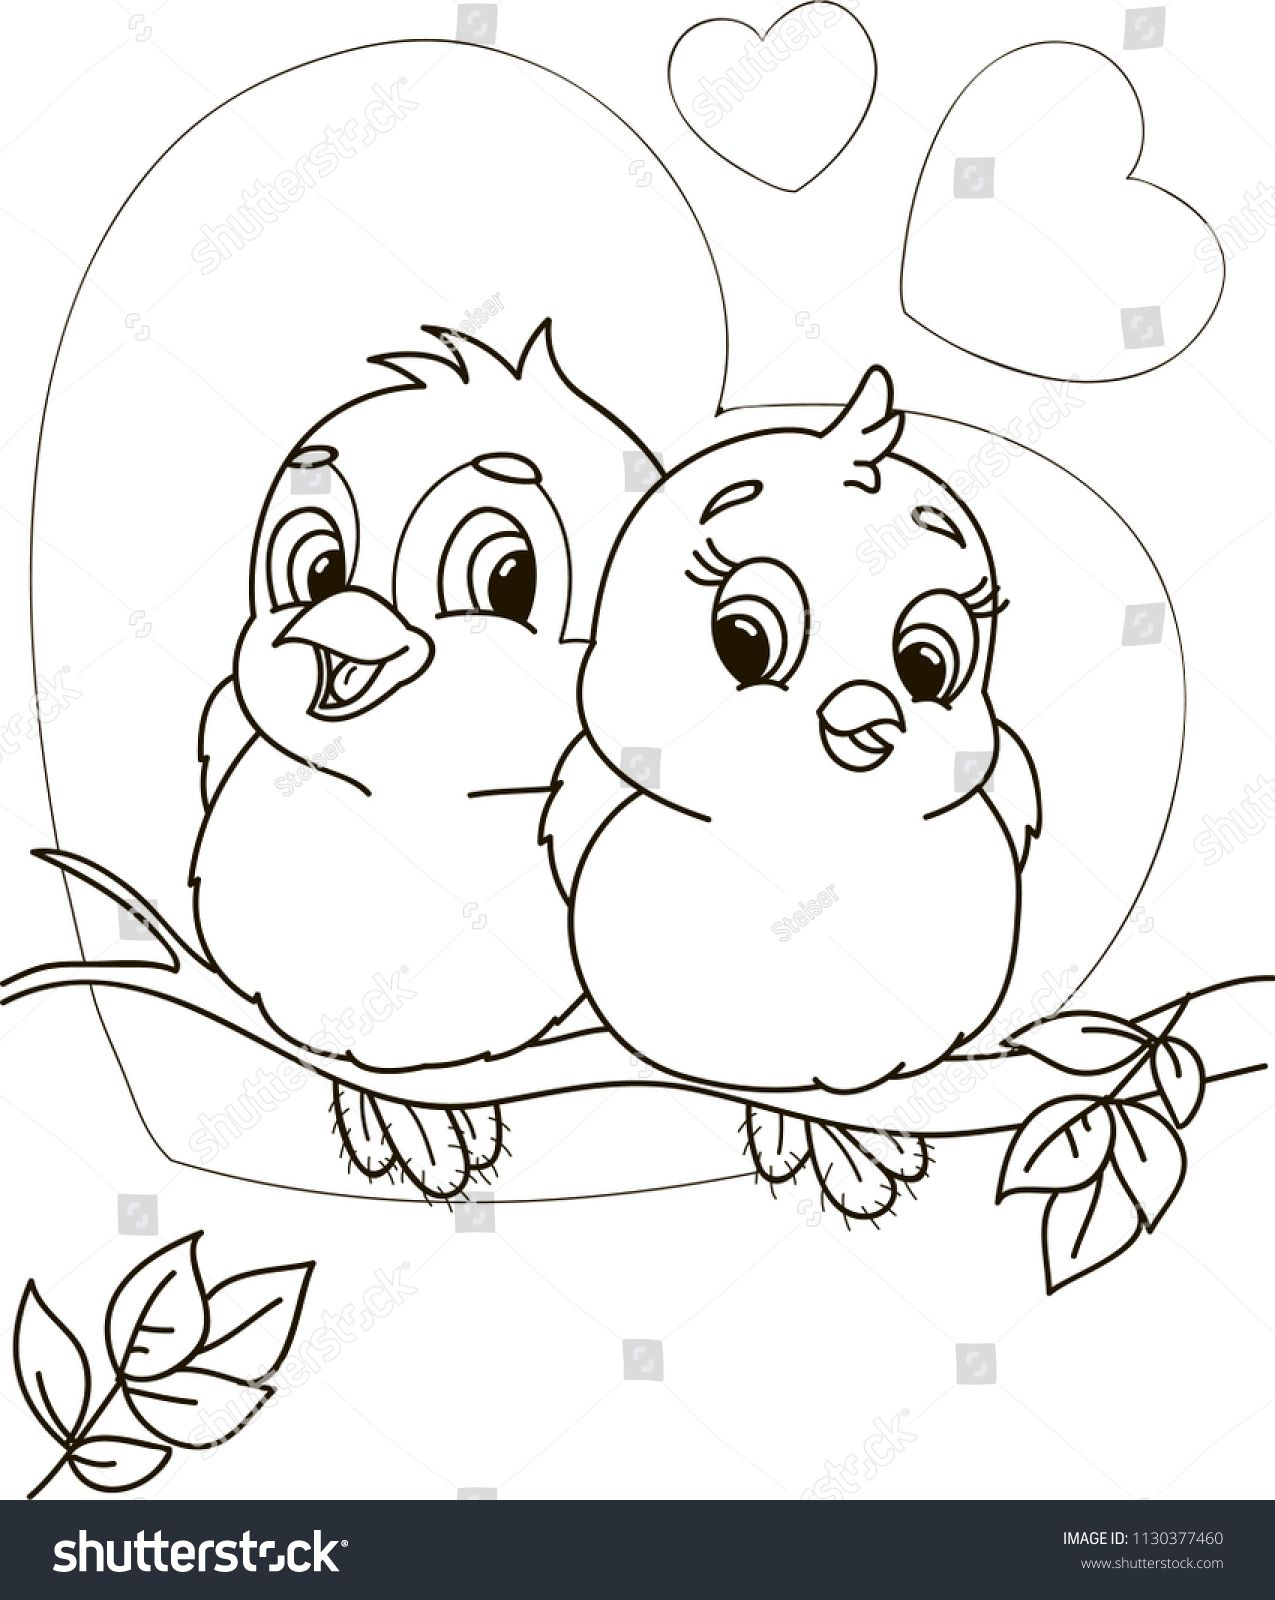 Coloring Page Outline Of Cartoon Cute Birds Vector Illustration